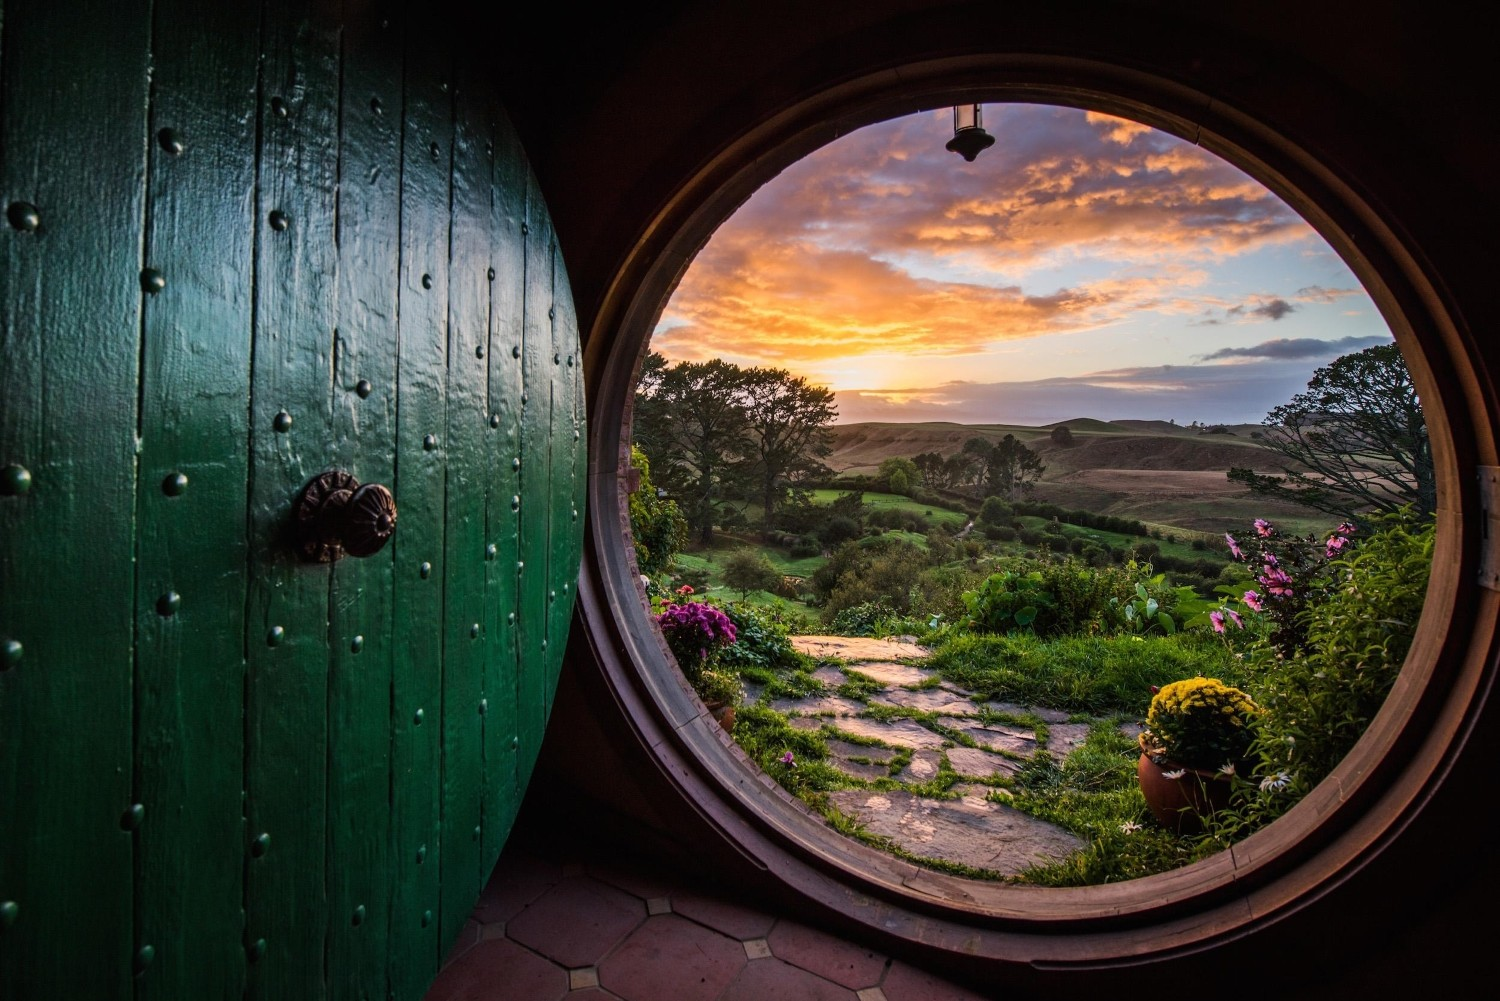 Hobbiton Movie Set.jpg